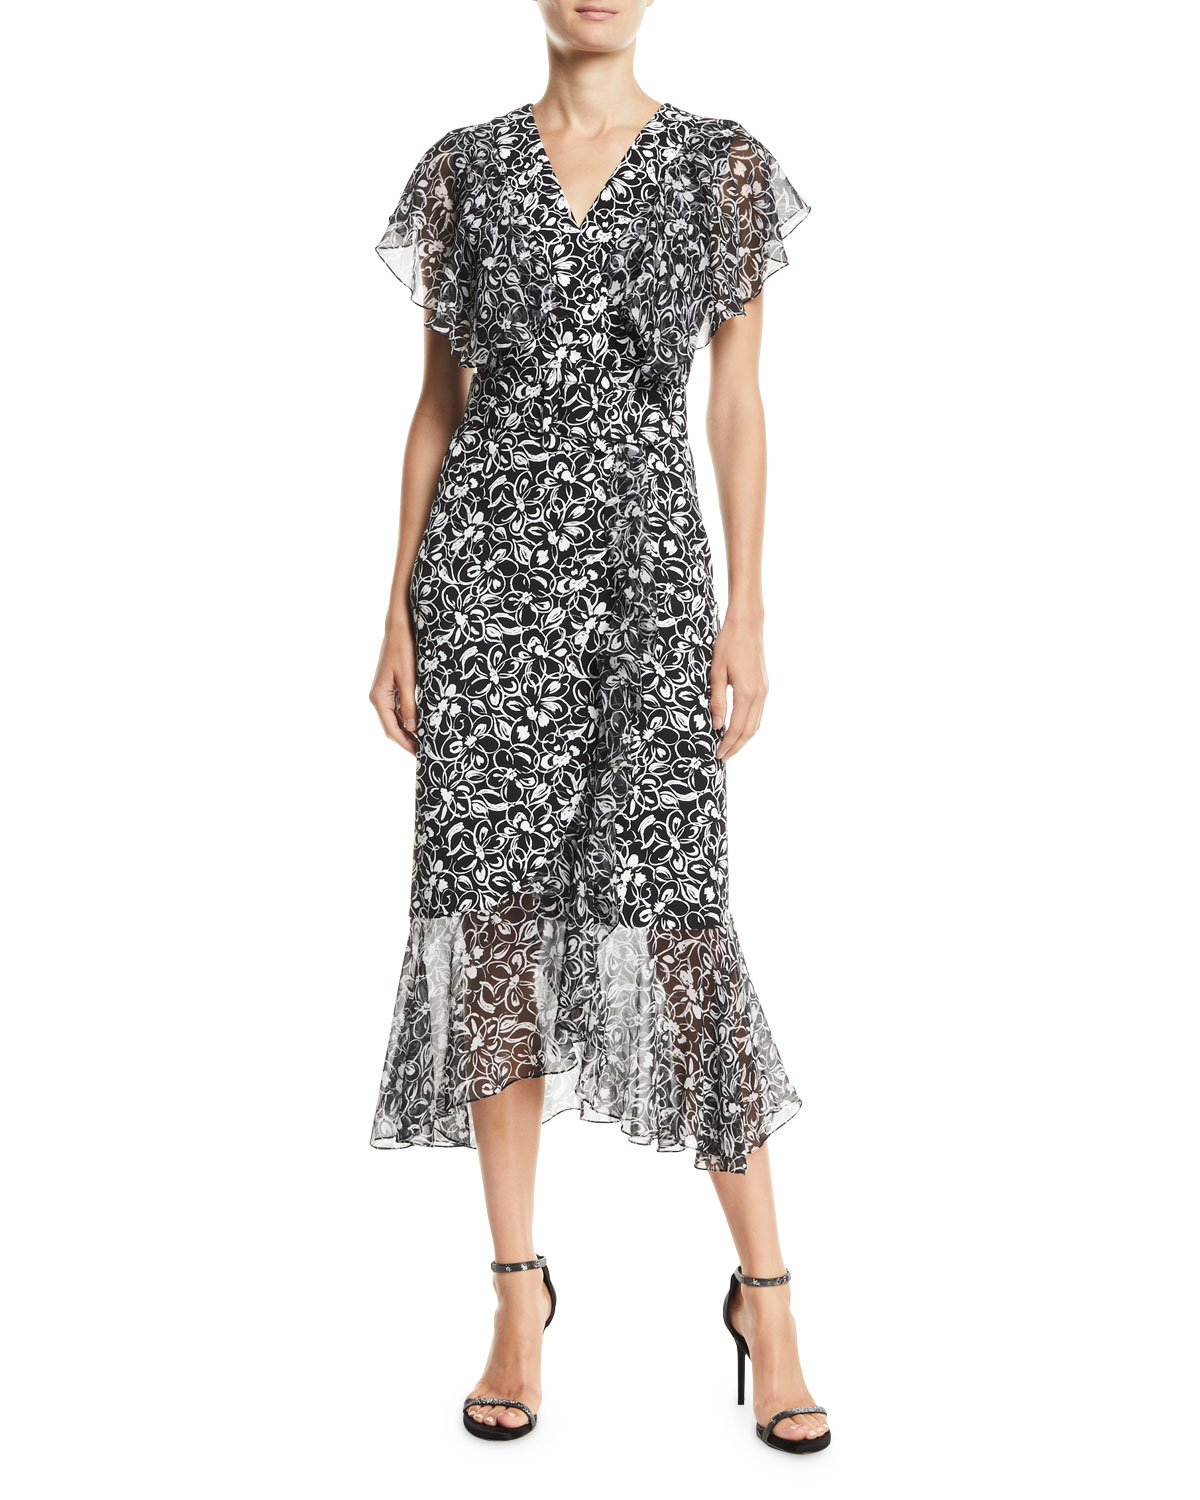 2b50b0f961 Michael Kors Collection Painterly Floral-Print Ruffled Wrap Dress ...